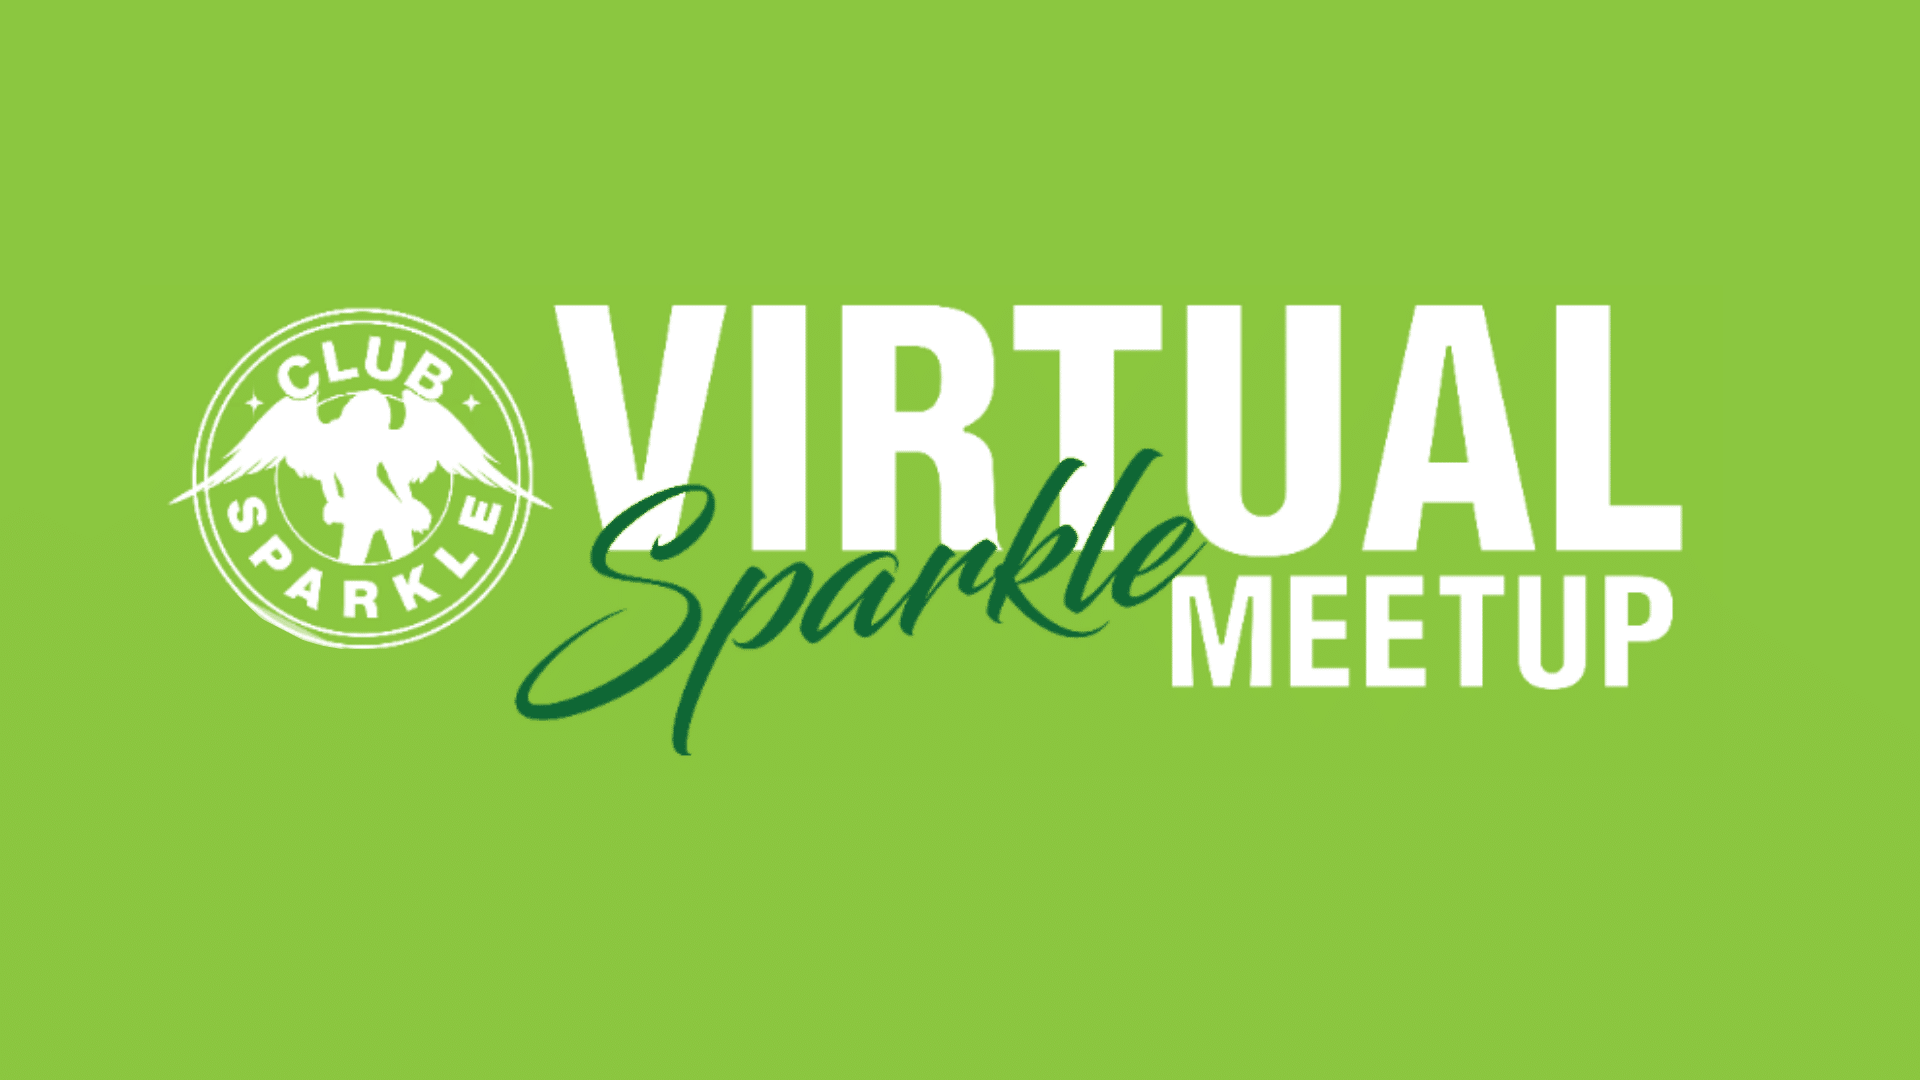 Virtual Sparkle MeetUp (Open)